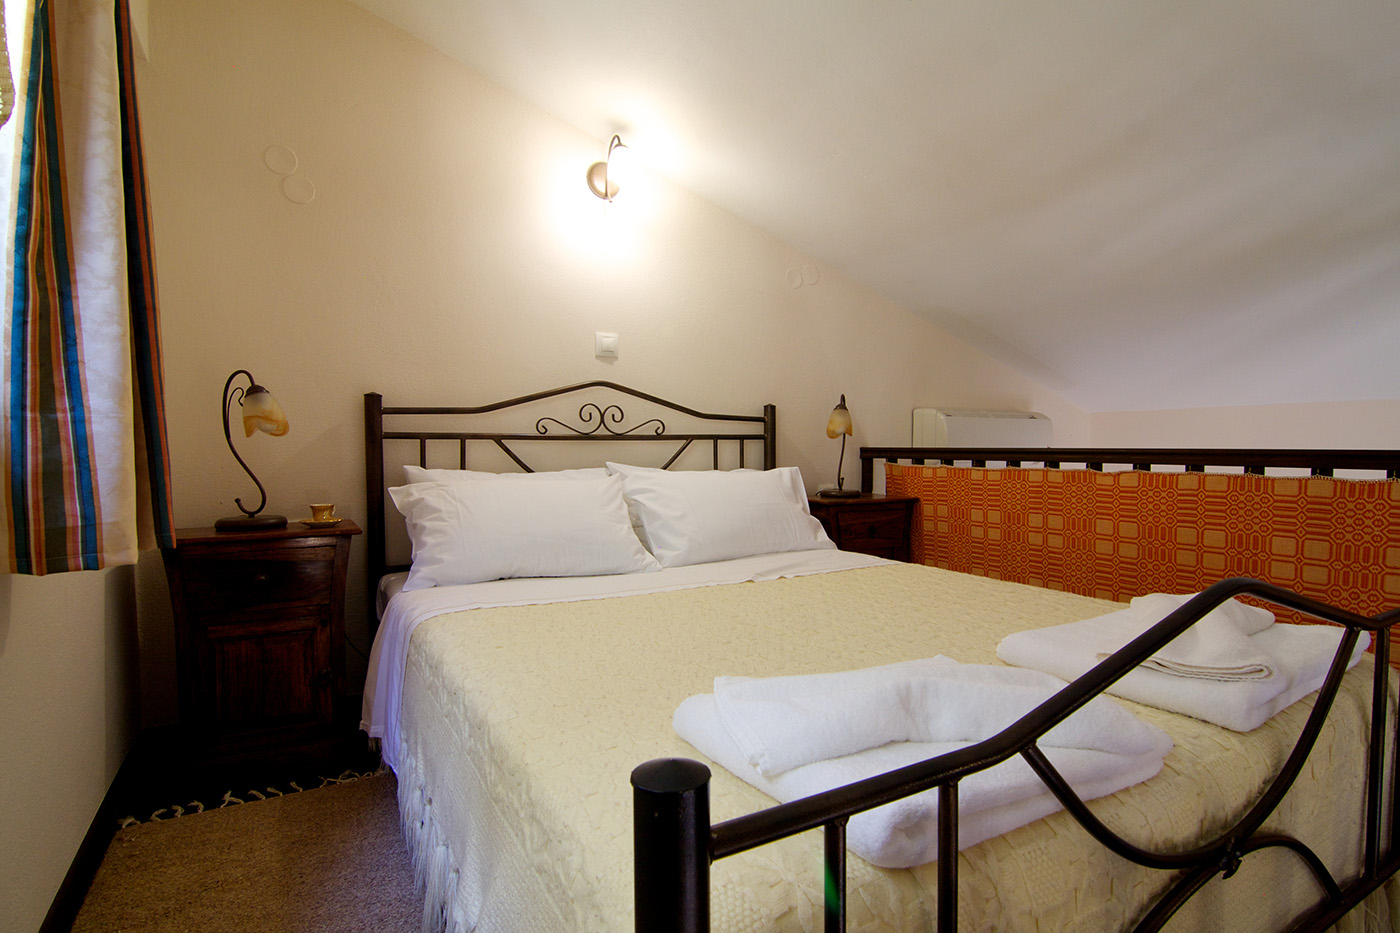 Rooms - Double bed in the attic of main bedroom